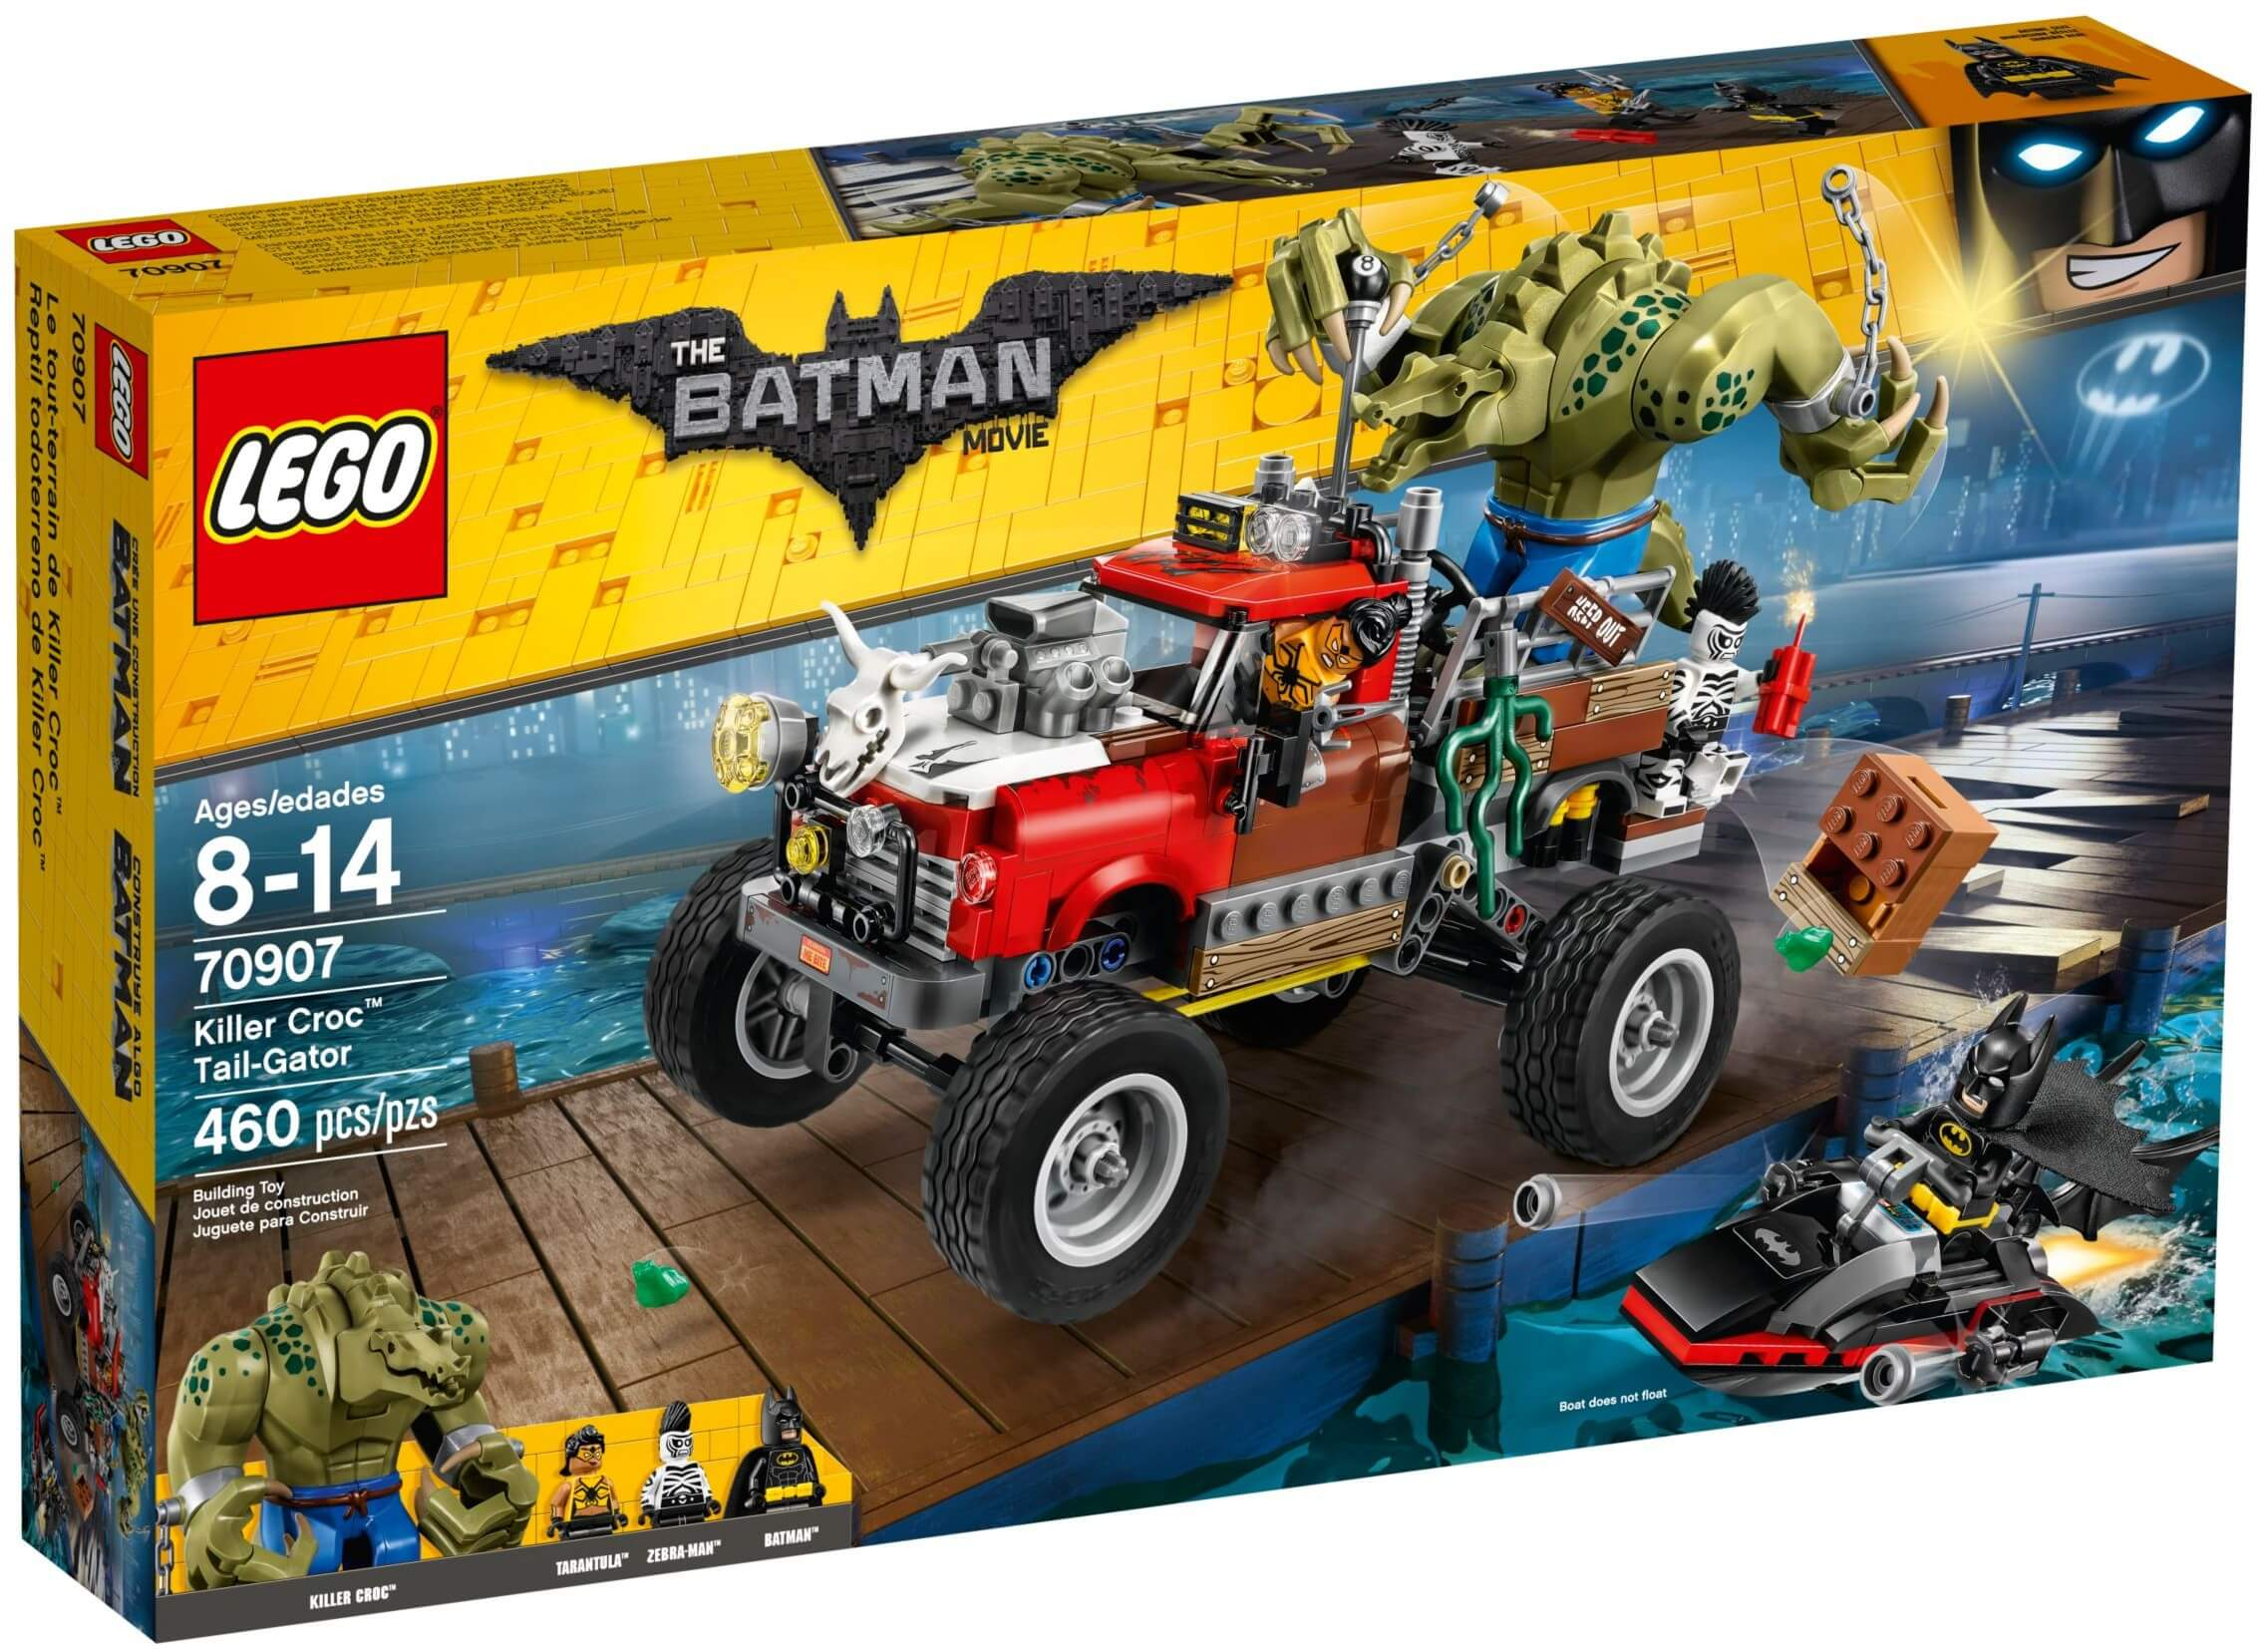 Mua đồ chơi LEGO 70907 - LEGO Batman Movie 70907 - Killer Croc Tail-Gator (LEGO 70907 Killer Croc Tail-Gator)